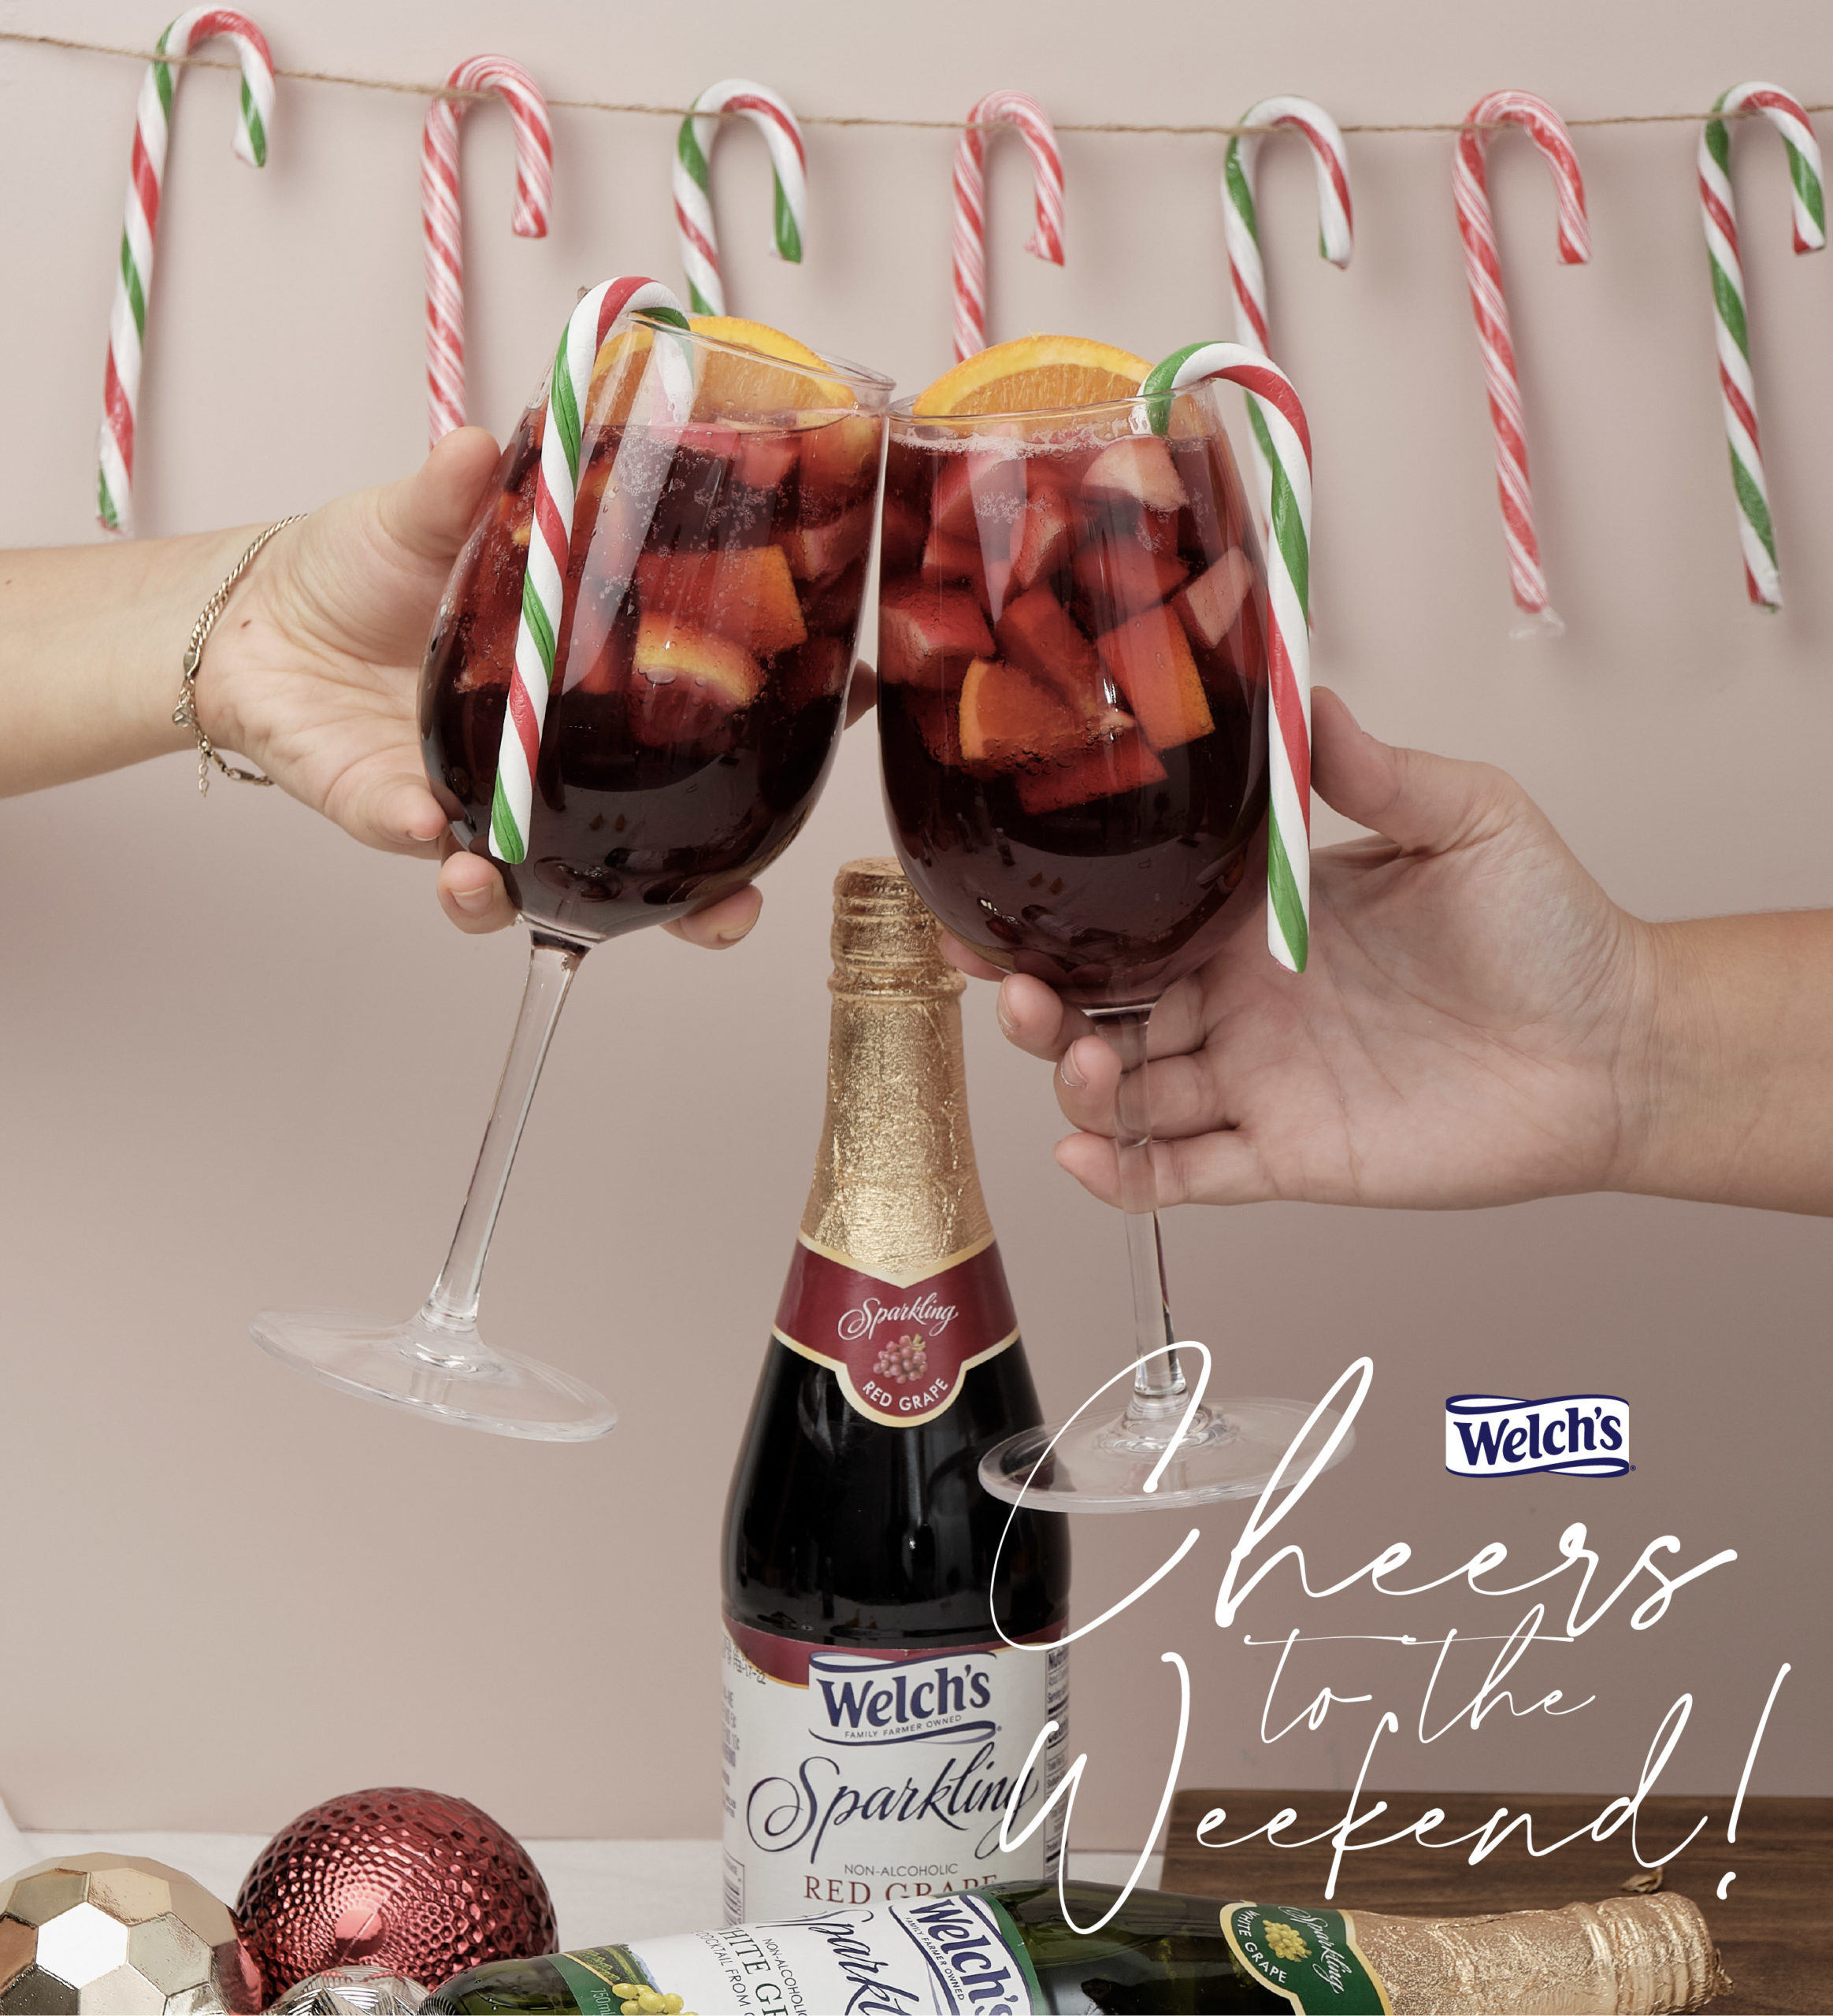 #ShareTheSparkle and celebrate with Welch's Sparkling Juices